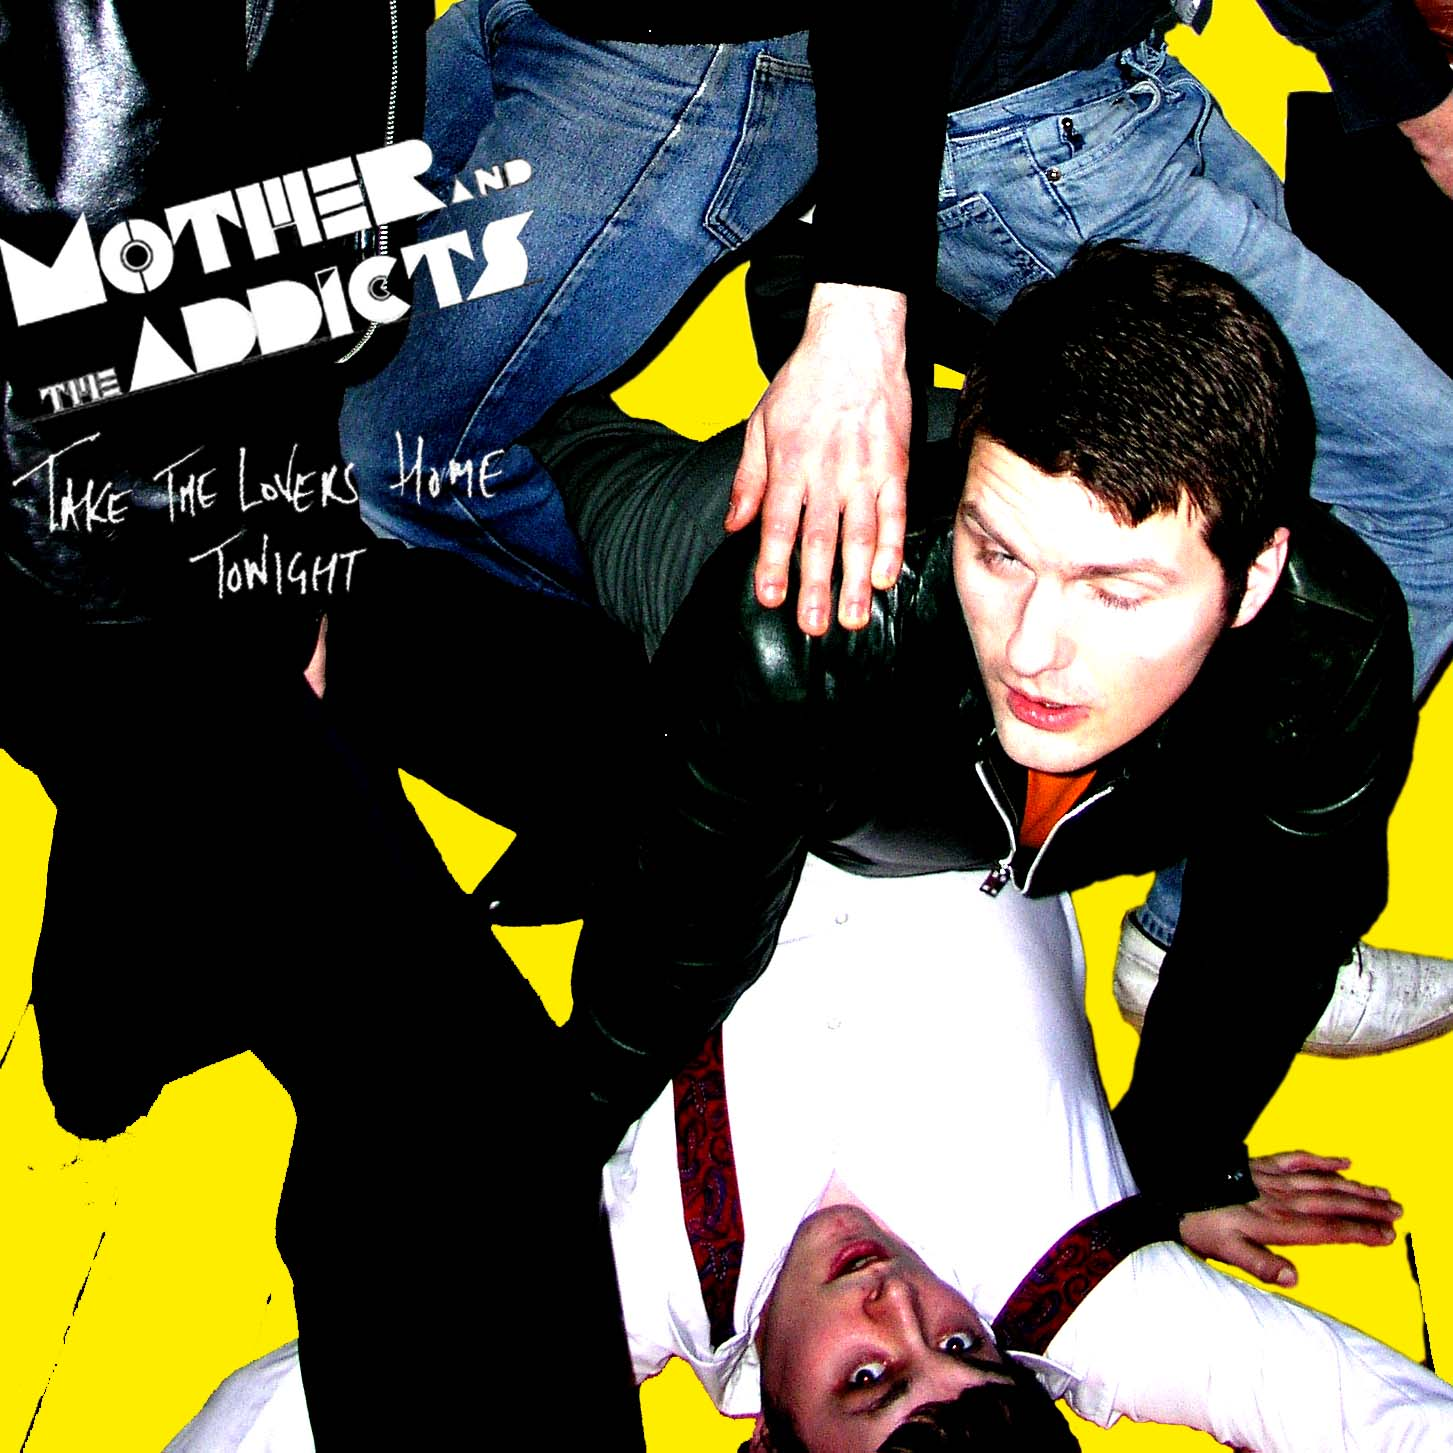 Mother And The Addicts - Take The Lovers Home Tonight - Vinyl Album (2005) - Mother And The Addicts